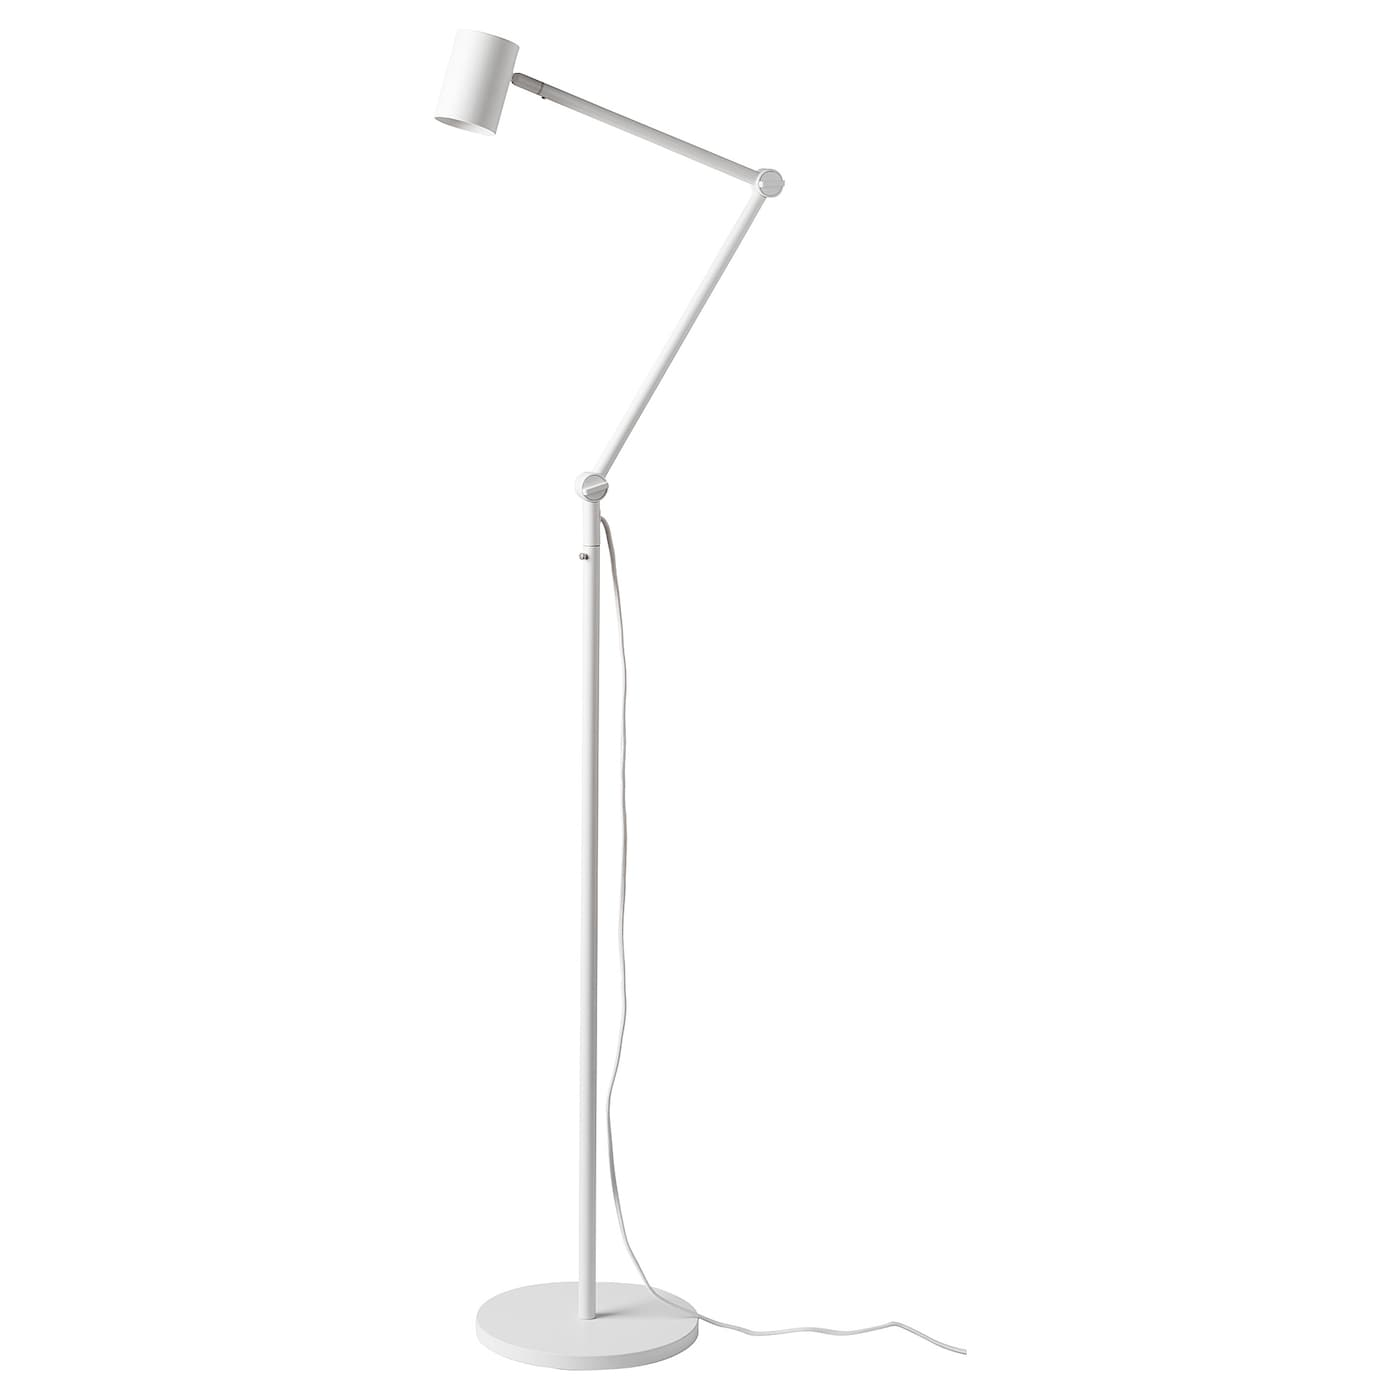 IKEA NYMÅNE floor/reading lamp Provides a directed light that is great for reading.